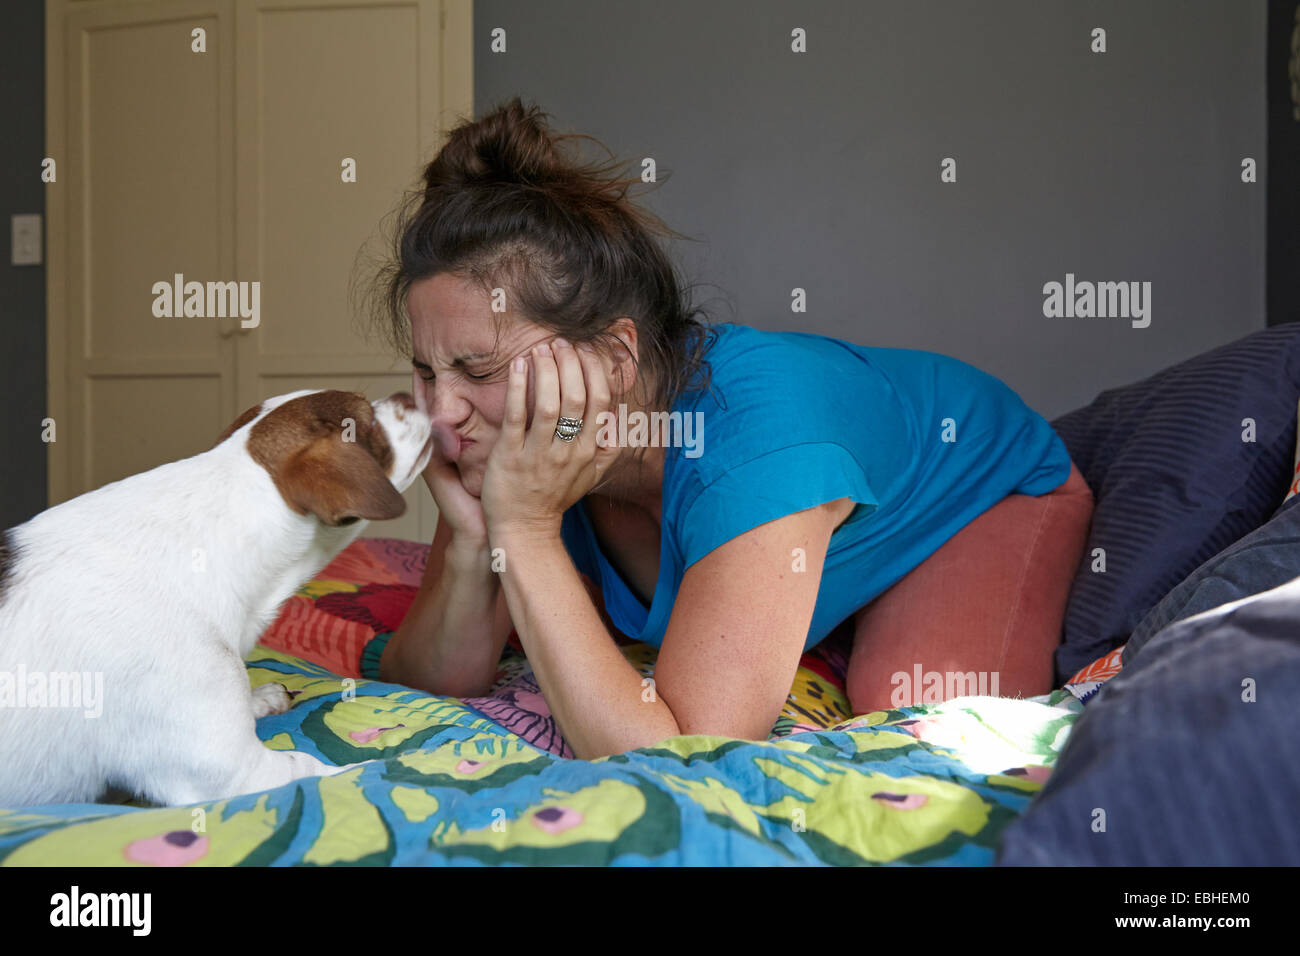 Woman pulling face whilst being licked by dog - Stock Image